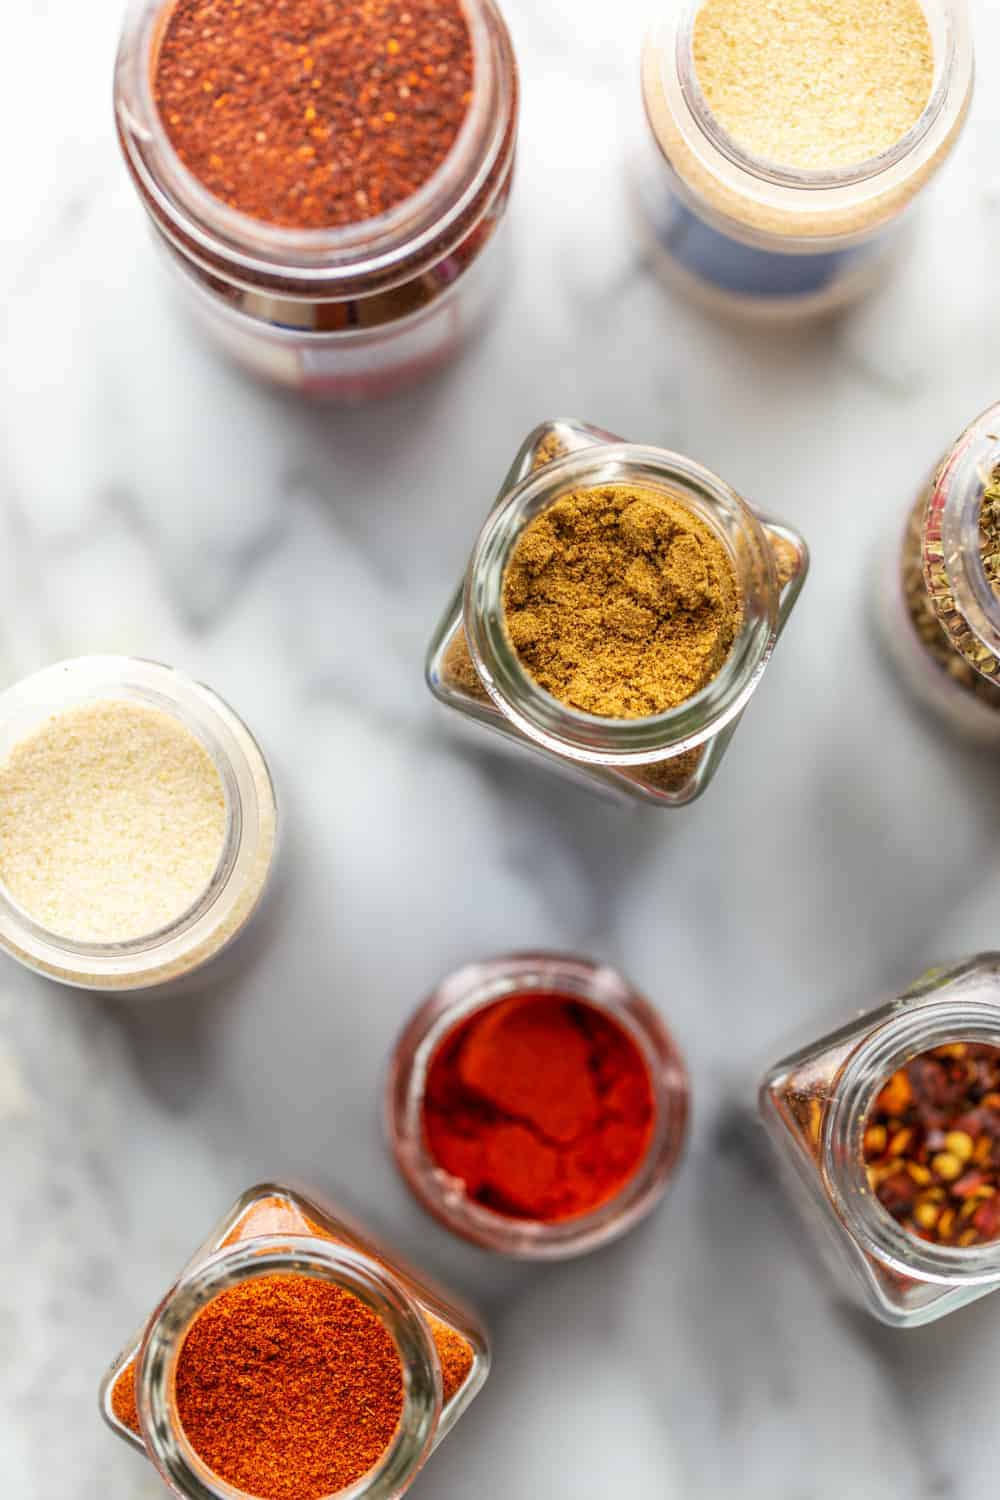 Overhead view of open spice jars for taco seasoning on a marble surface